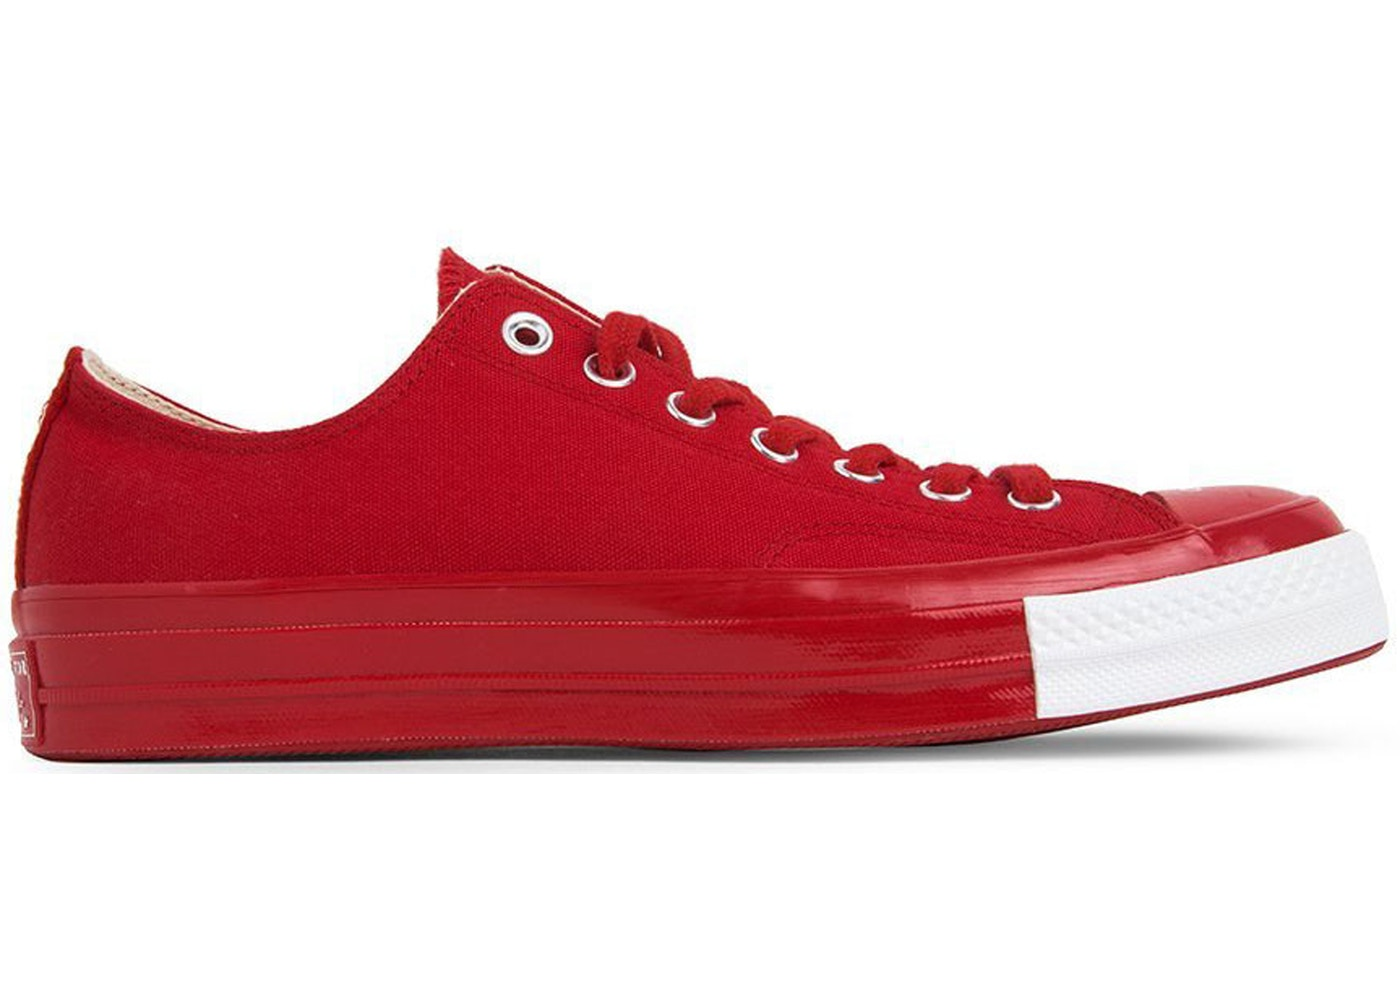 2converse red